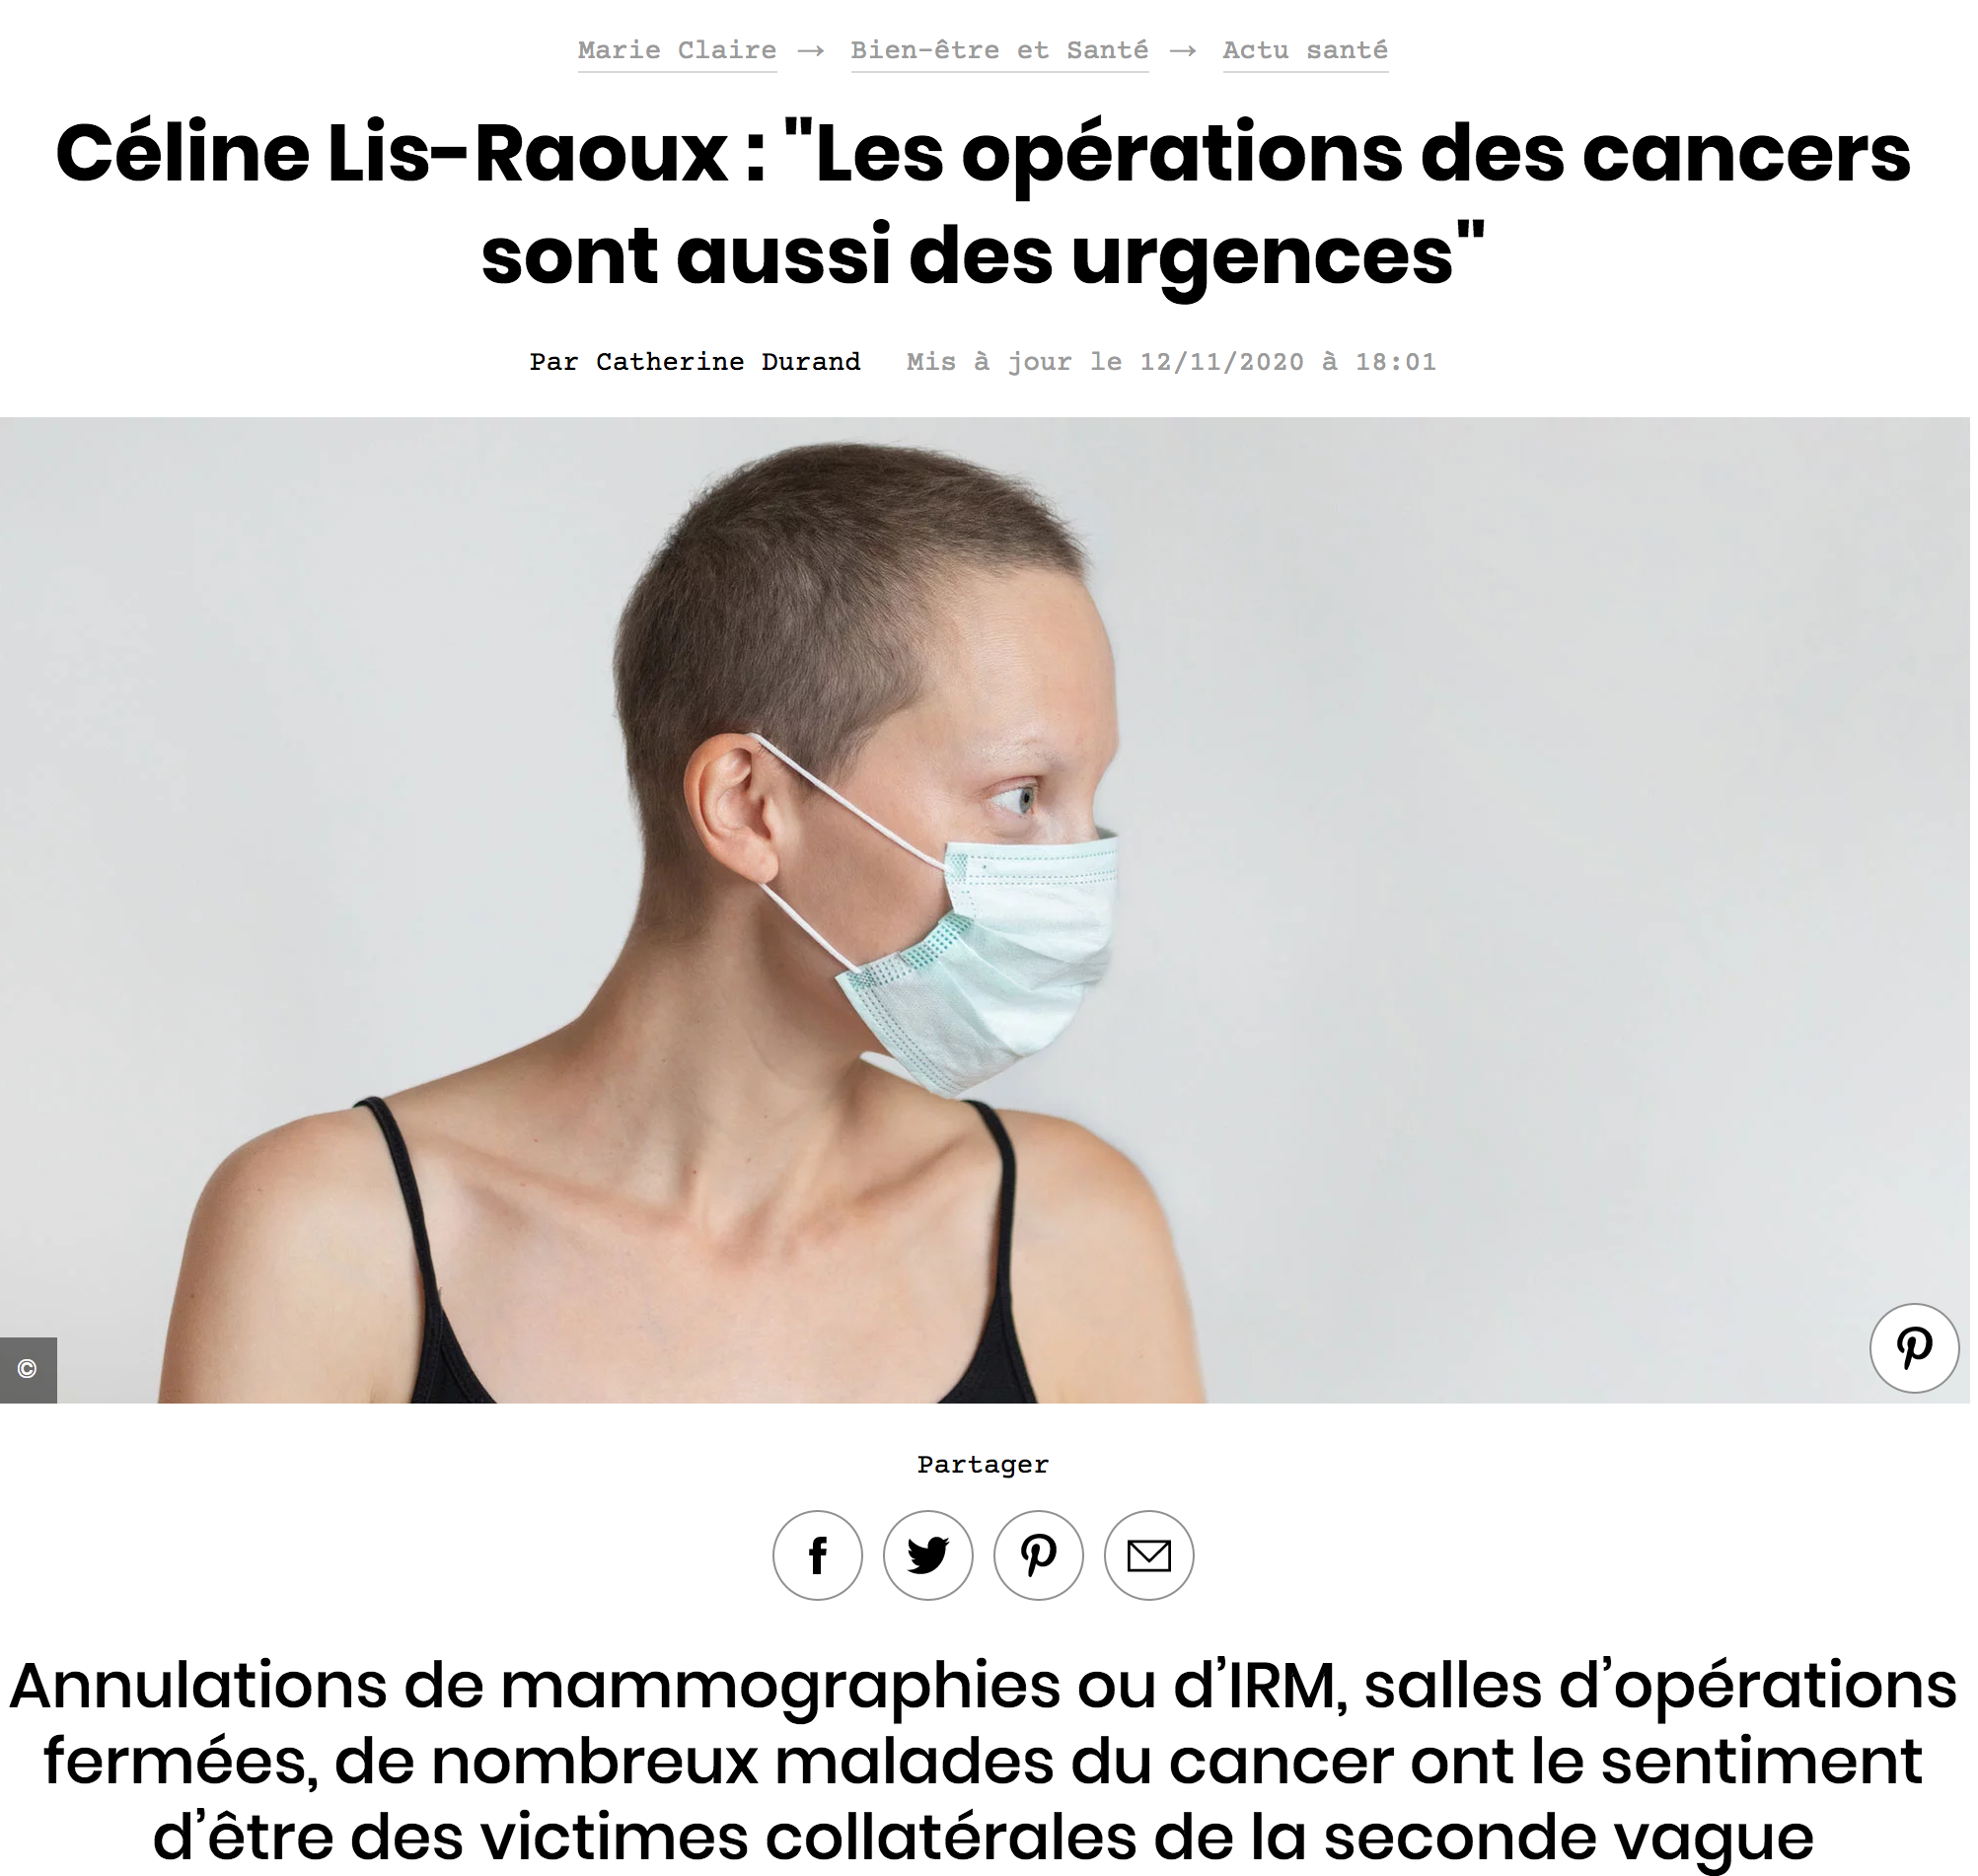 deprogrammation-operations-cancer-celine-lis-raoux-rose-up-association-rosemagazine-covid-2020